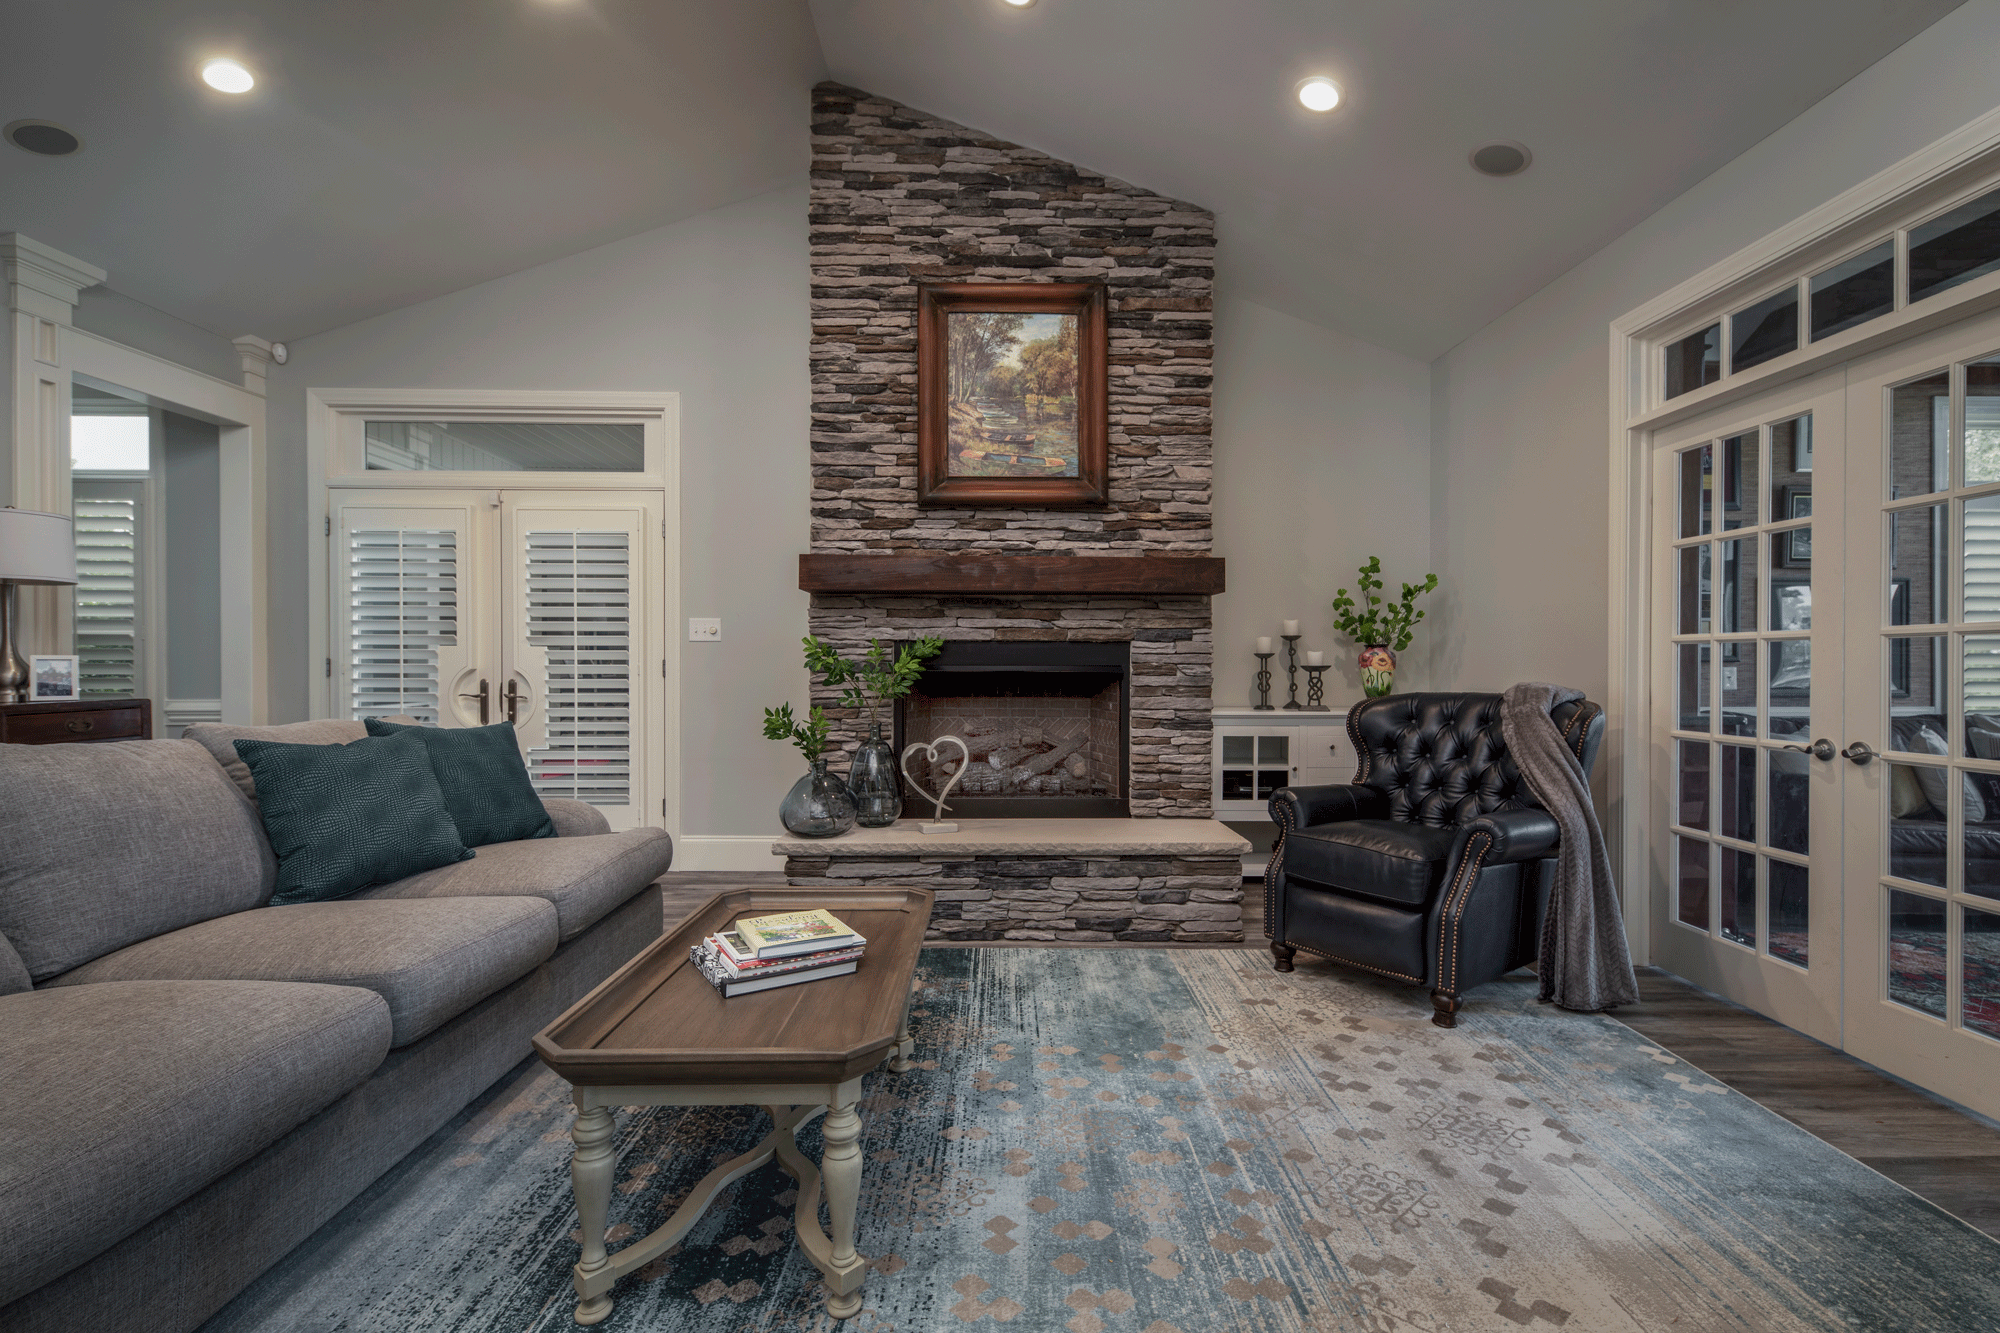 Living room design with stone fireplace, furniture, decor, and recessed lighting